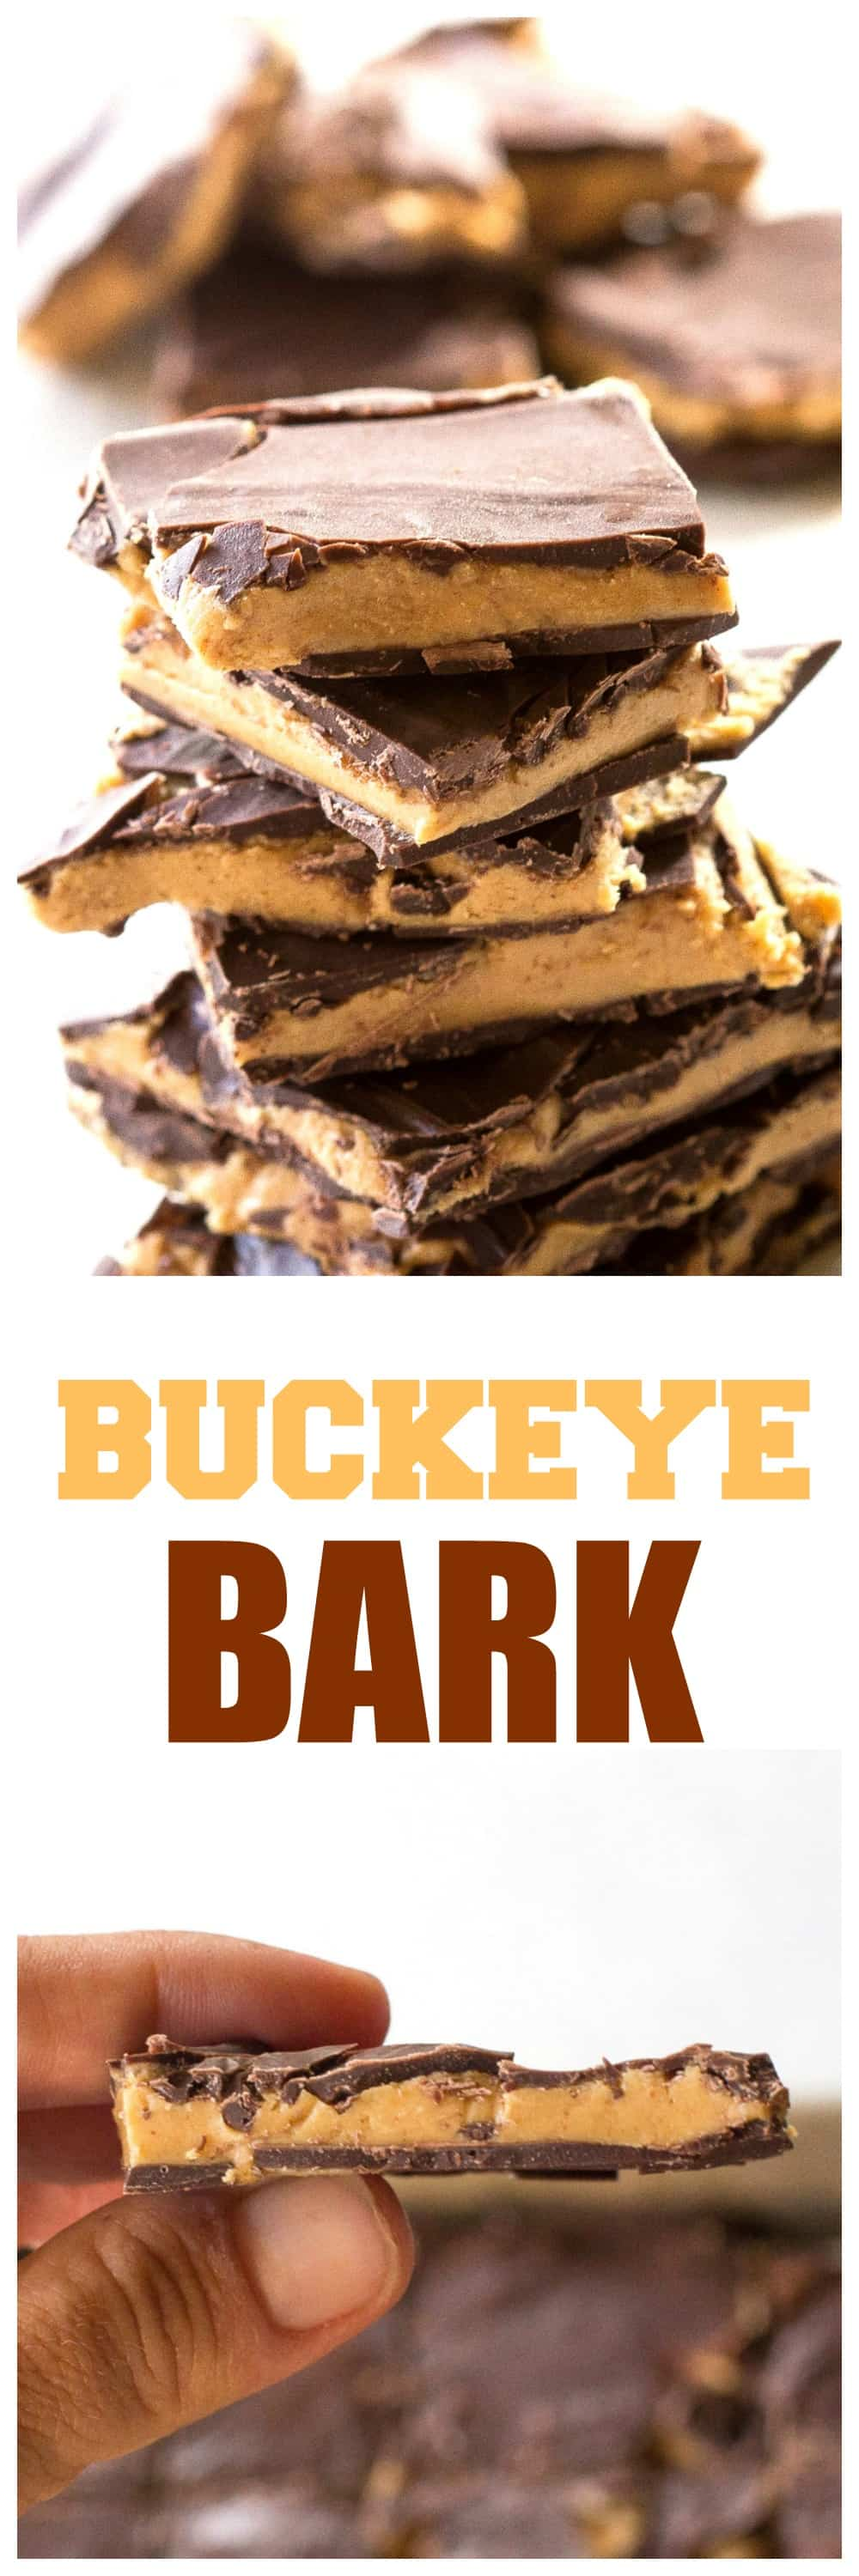 Buckeye Bark - so easy and seriously dangerous to have around. #buckeye #bark #chocolate #peanutbutter #dessert